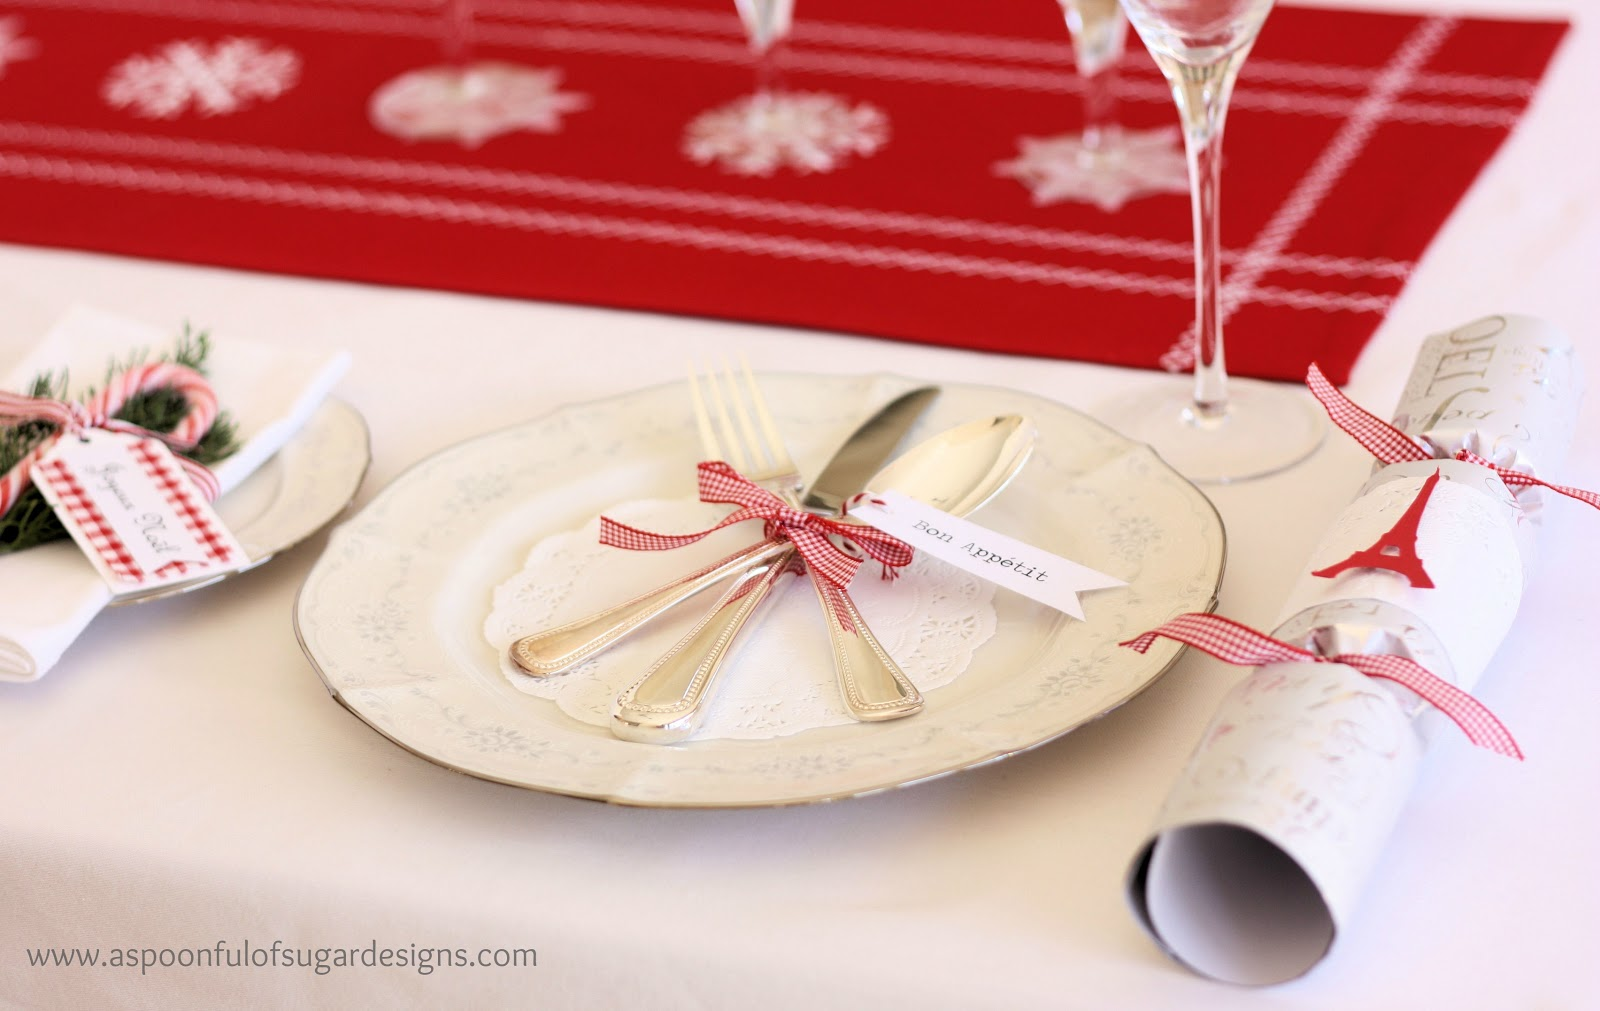 Our Christmas Table & Our Christmas Table - A Spoonful of Sugar